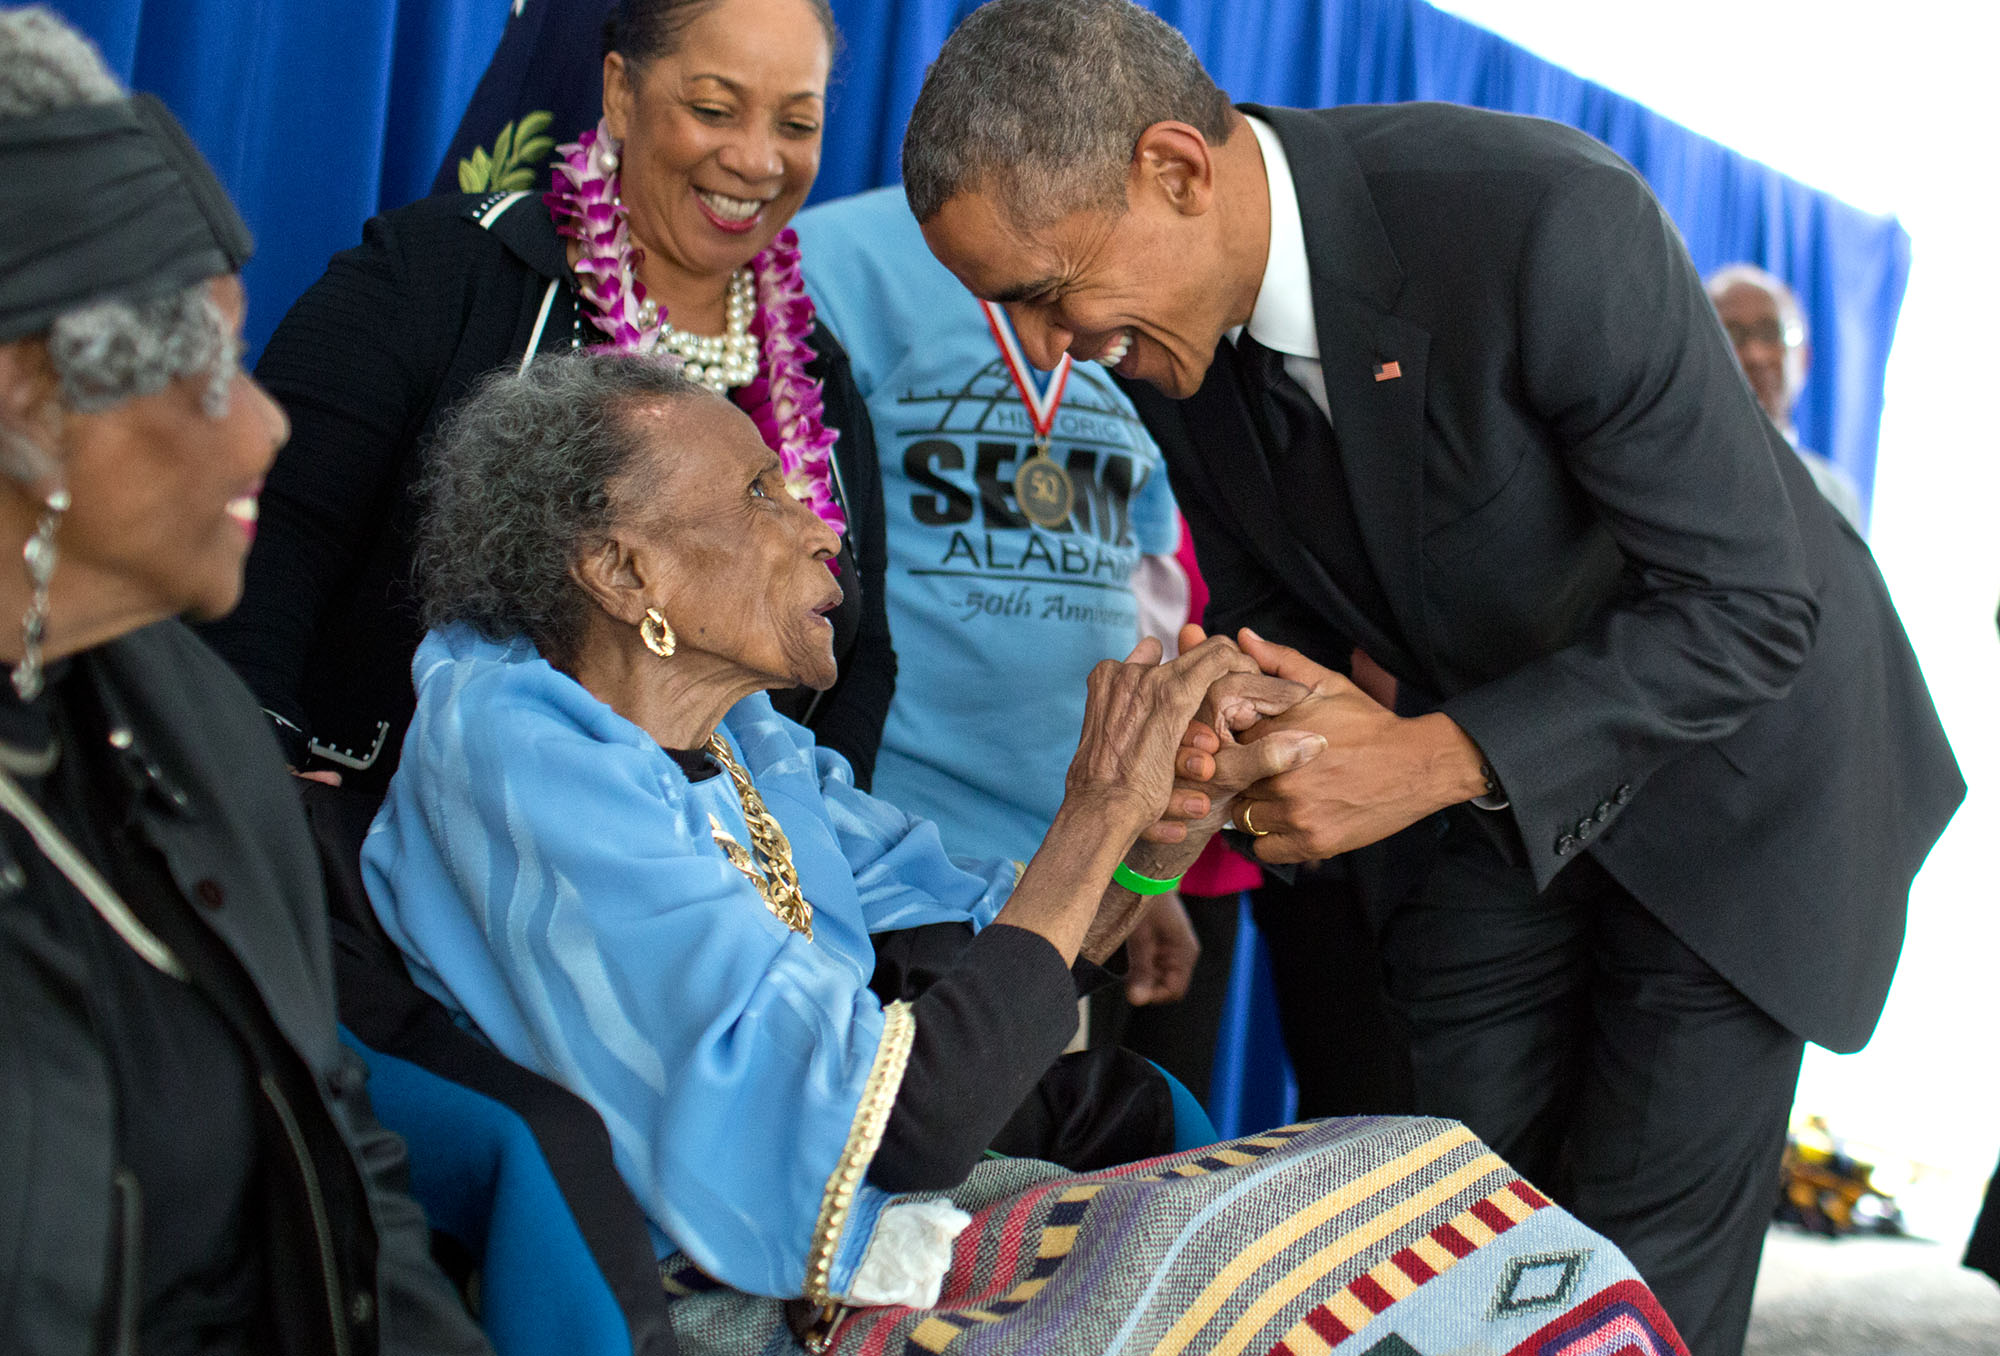 In Selma, the President greets former foot soldier Amelia Boynton Robinson, 103 years old, backstage before the ceremony. (Official White House Photo by Pete Souza)